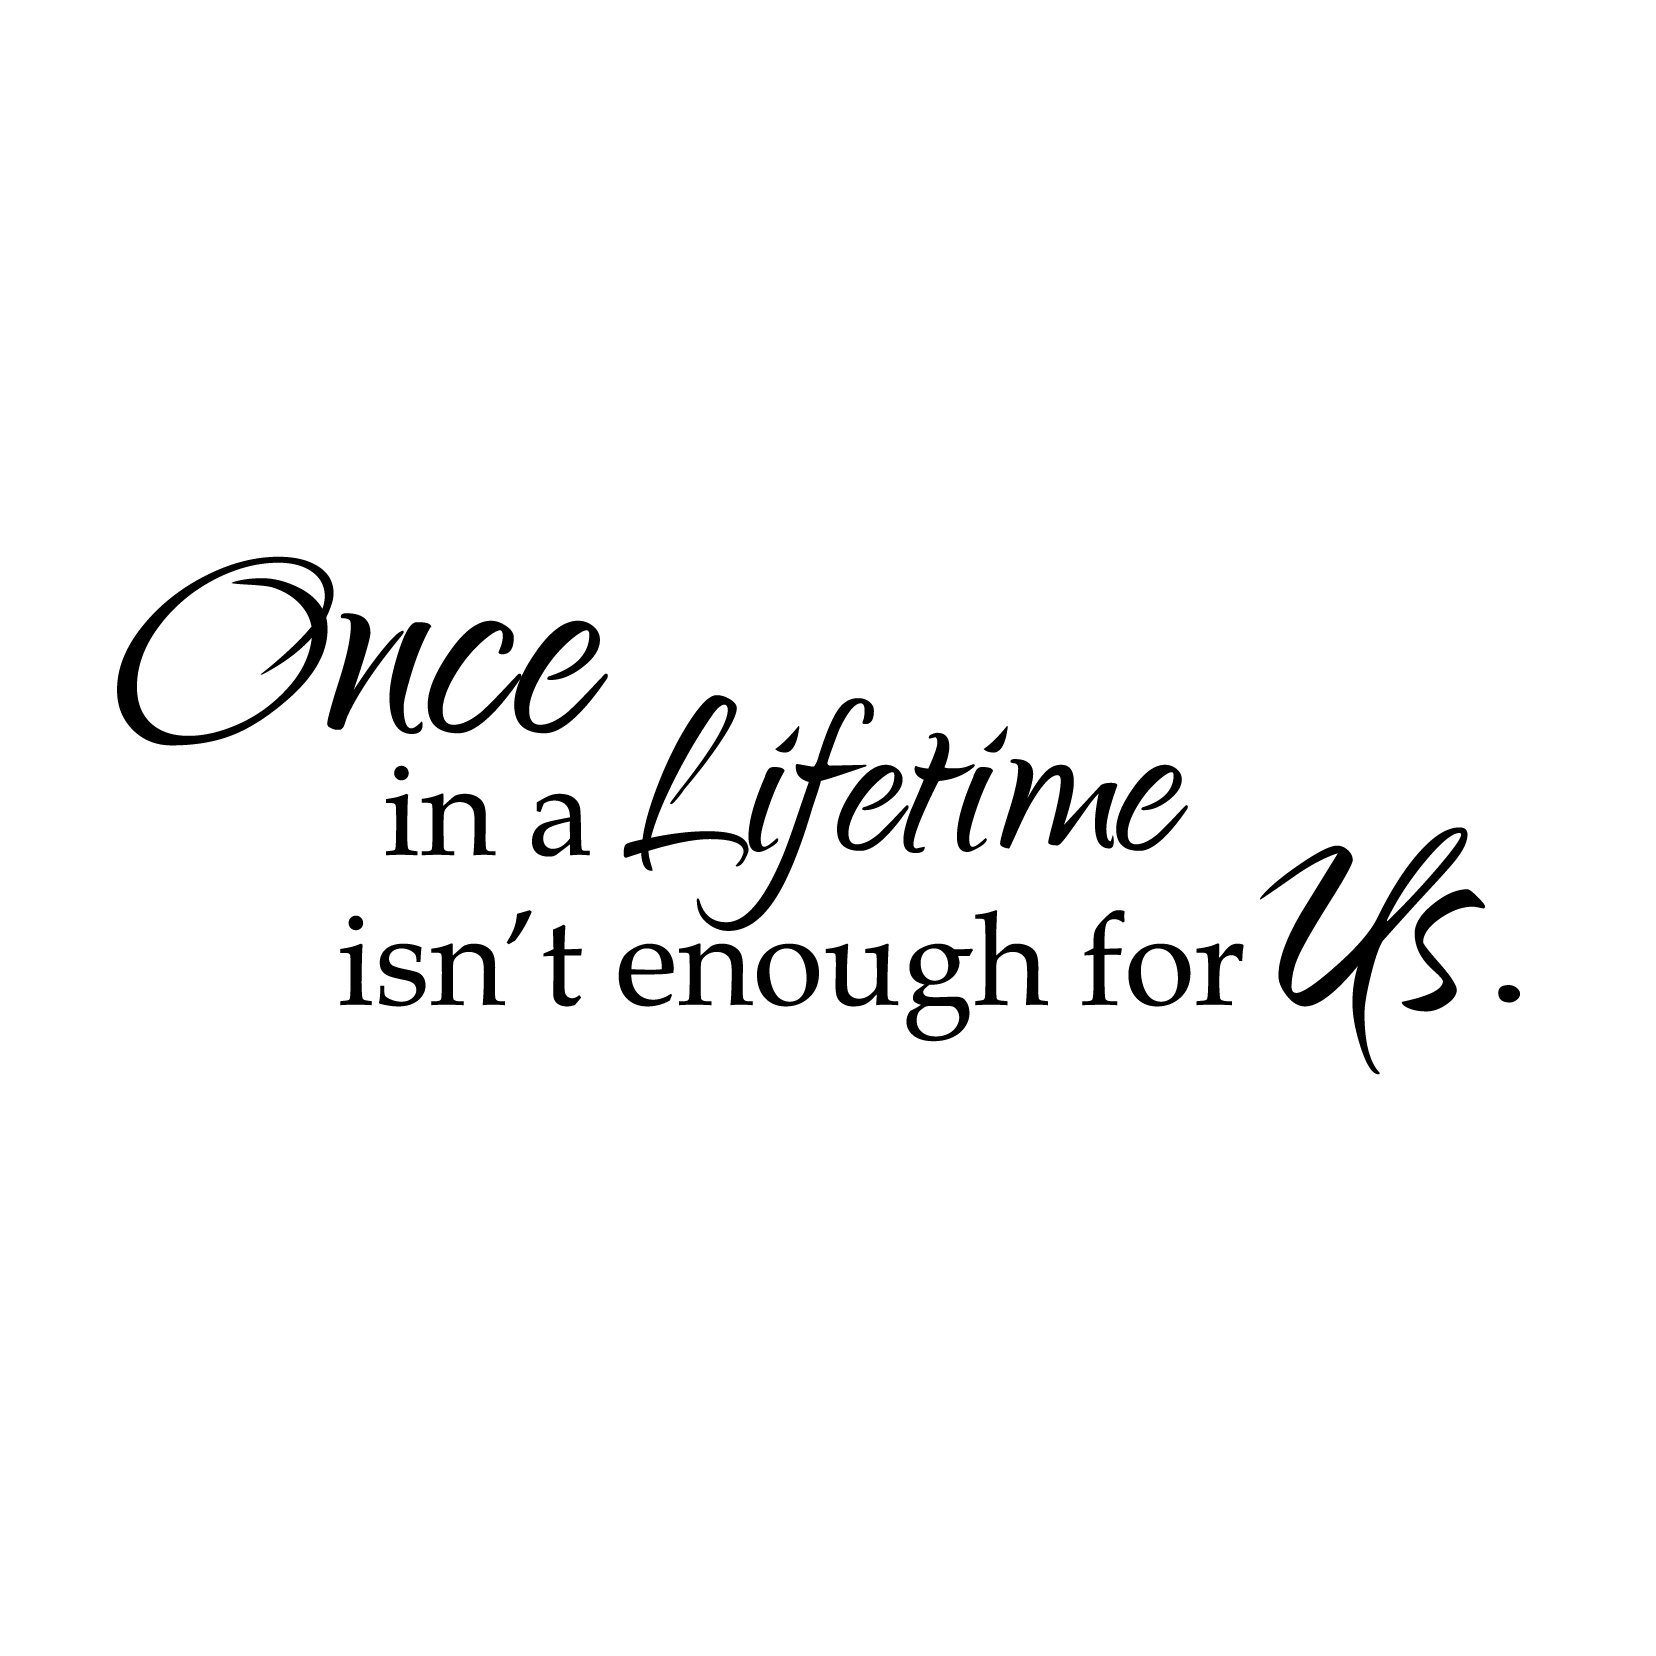 Once In A Lifetime Wall Quote - Horizontal - Vinyl Wall Art Decal for Homes, Offices, Kids Rooms, Nurseries, Schools, High Schools, Colleges, Universities, Interior Designers, Architects, Remodelers